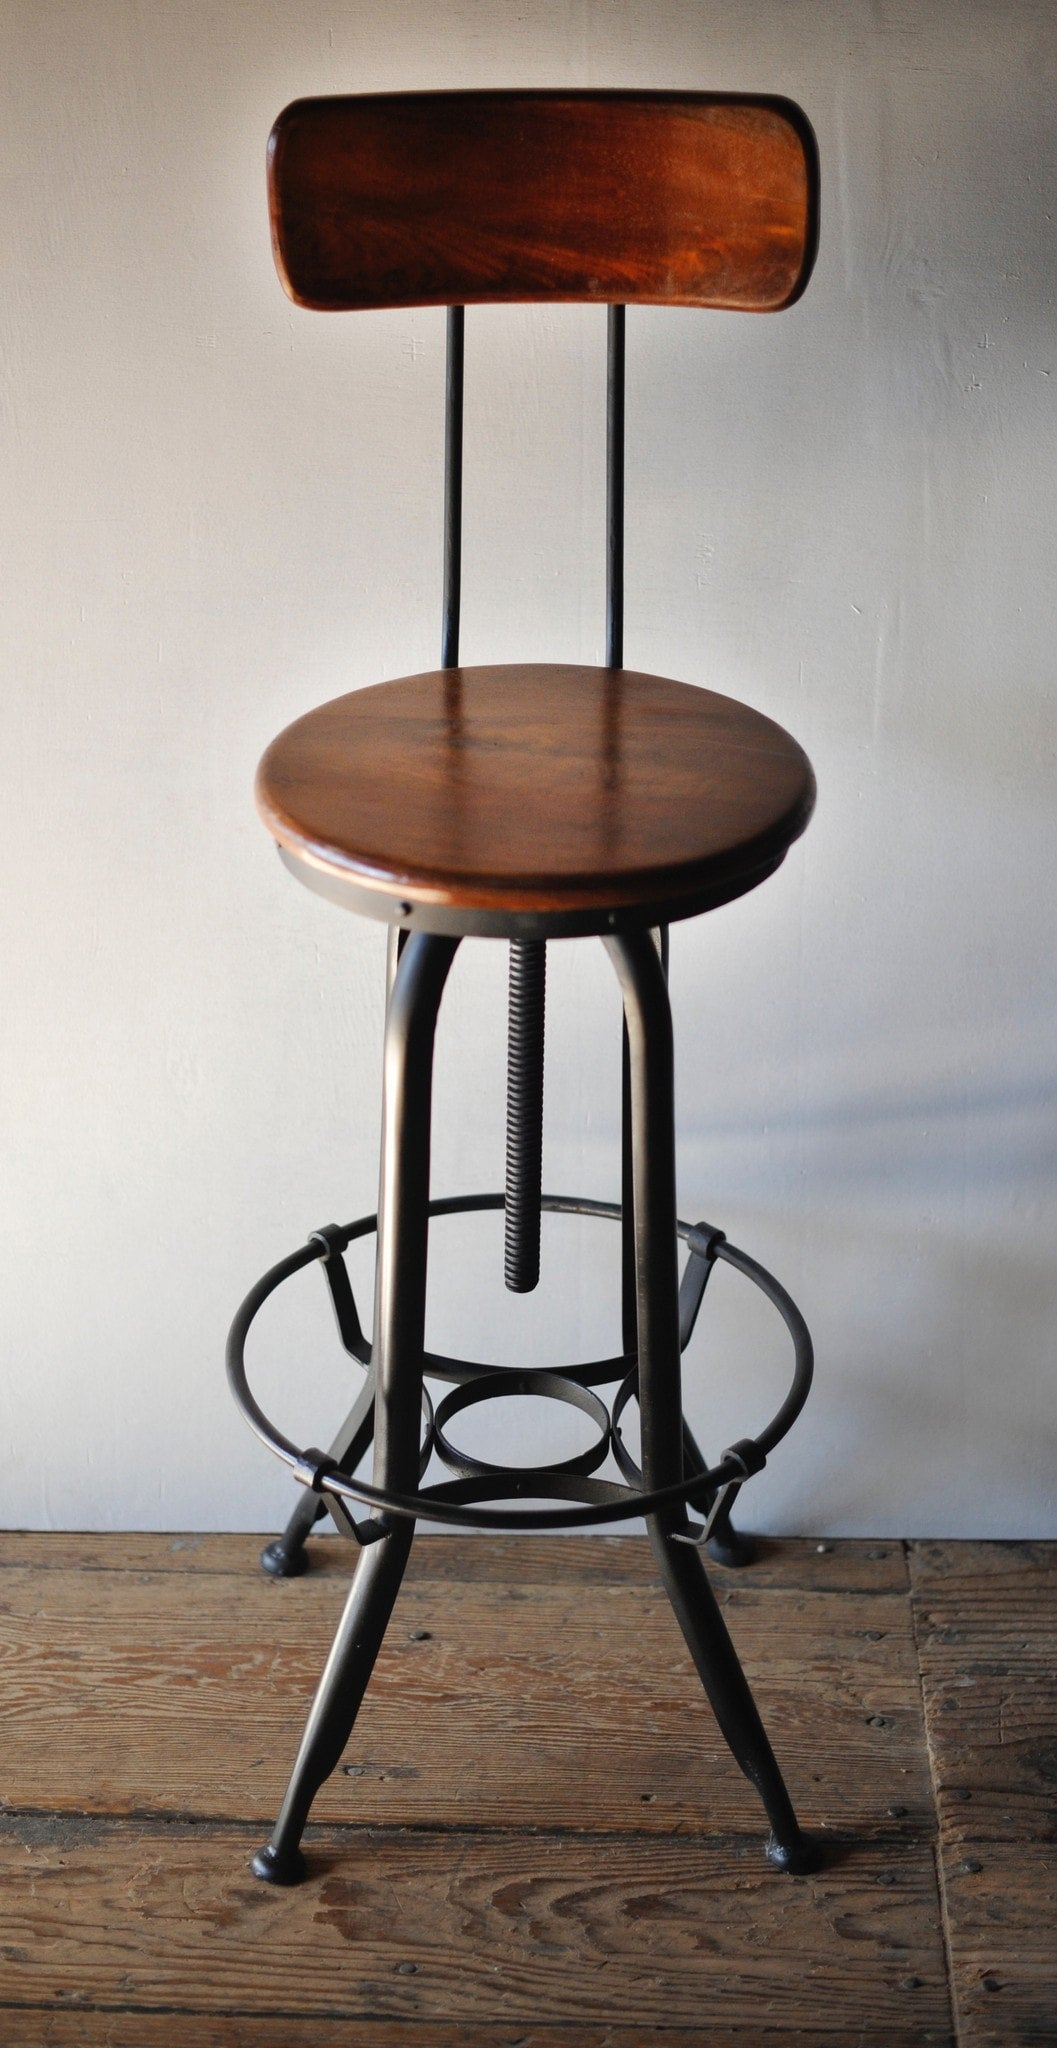 Industrial Metal and Wood Counter Stools